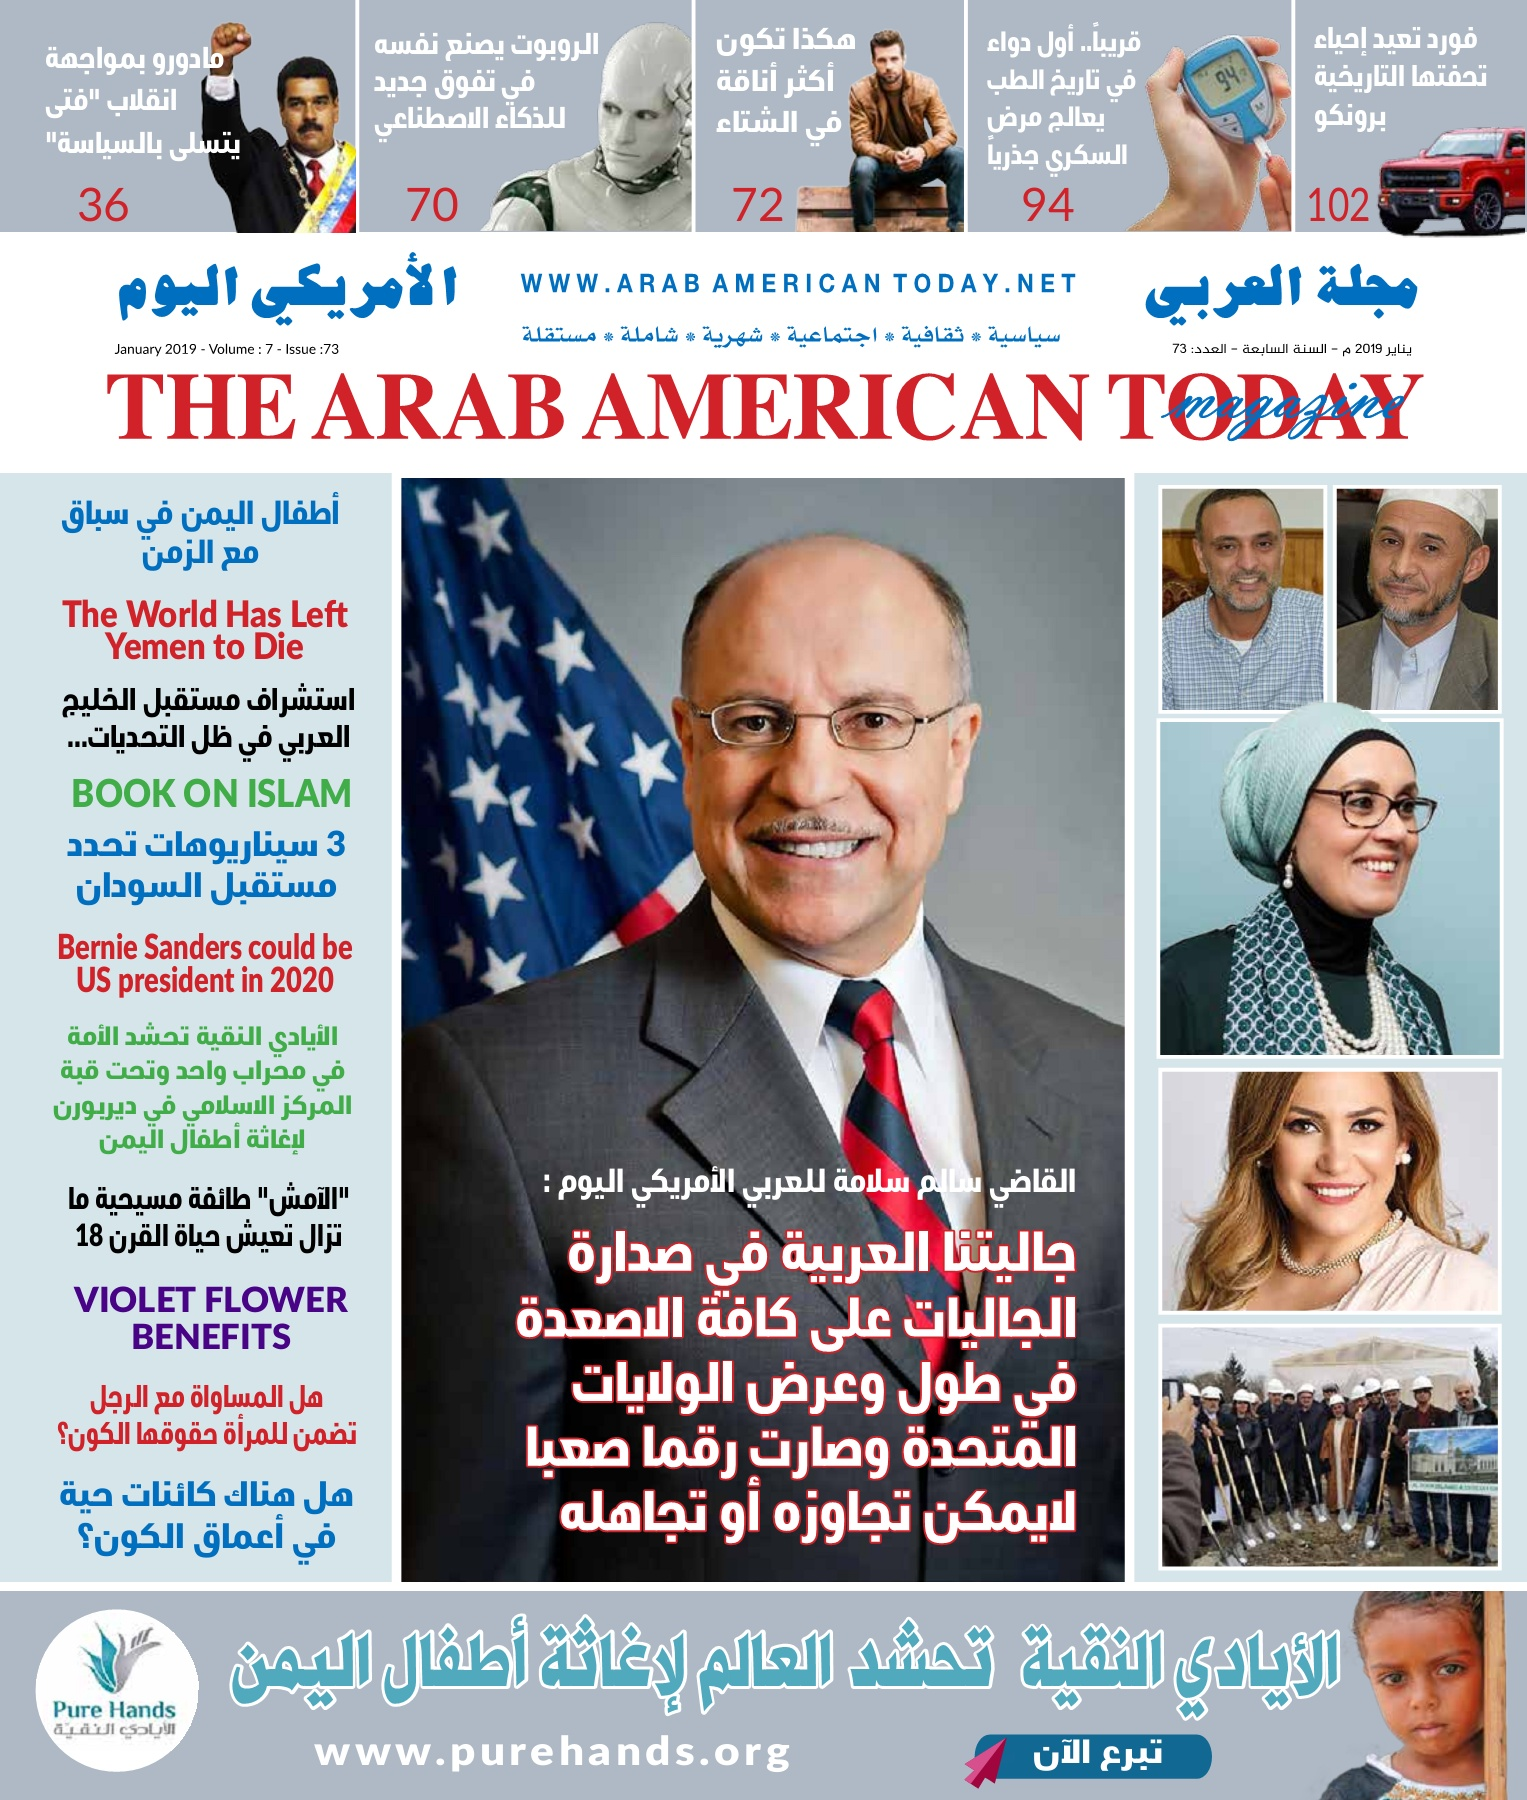 169bf6986 THE ARAB AMERICAN TODAY Pages 51 - 100 - Text Version | AnyFlip